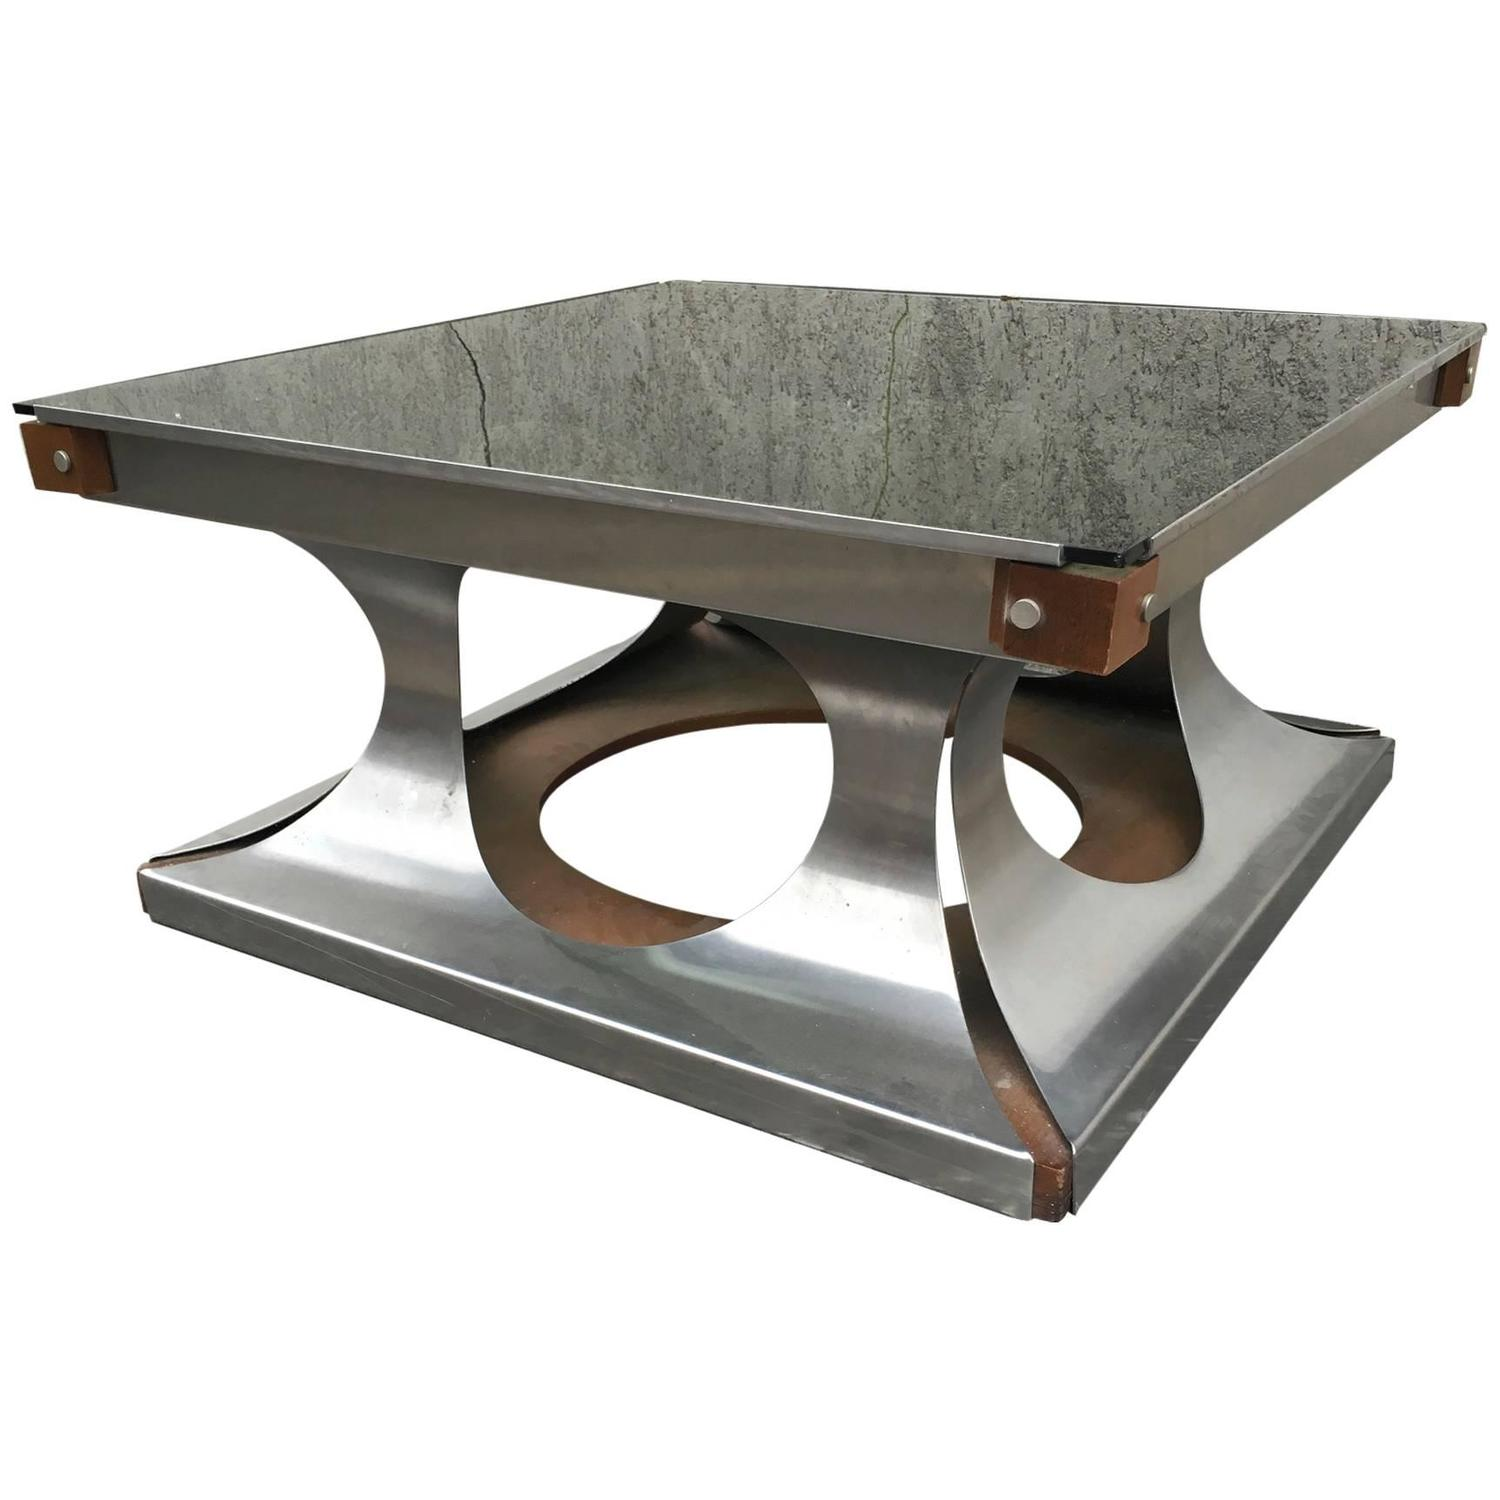 Maison jansen 1970s brushed steel and wood square coffee table at 1stdibs Wood square coffee tables